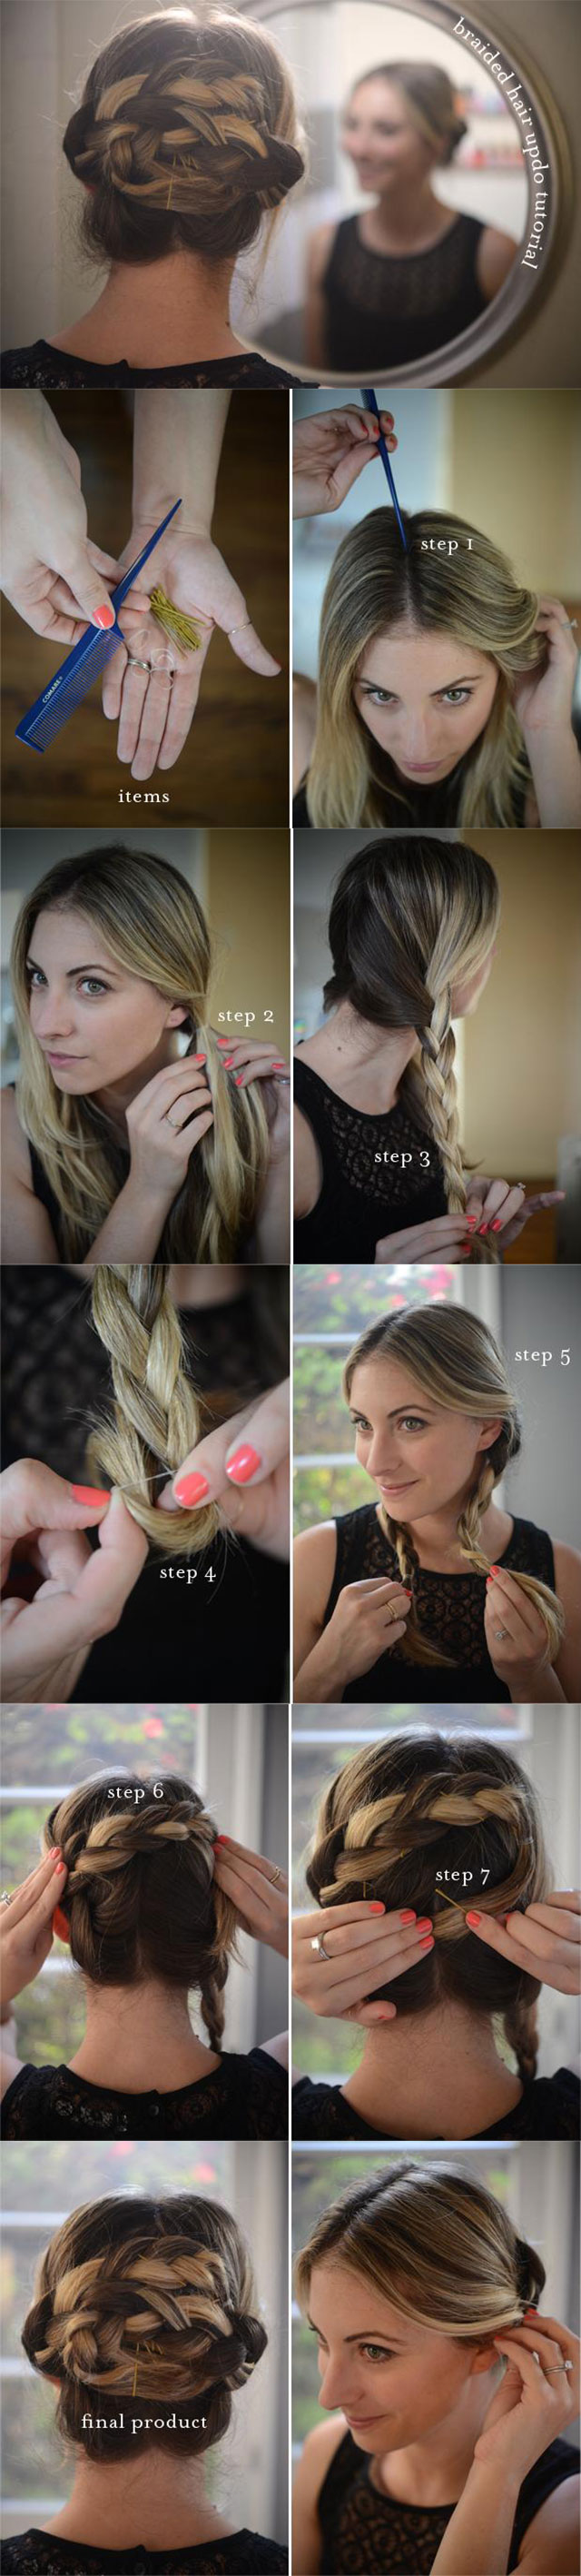 Creative Step By Step Hairstyles For School  Lolroflcom